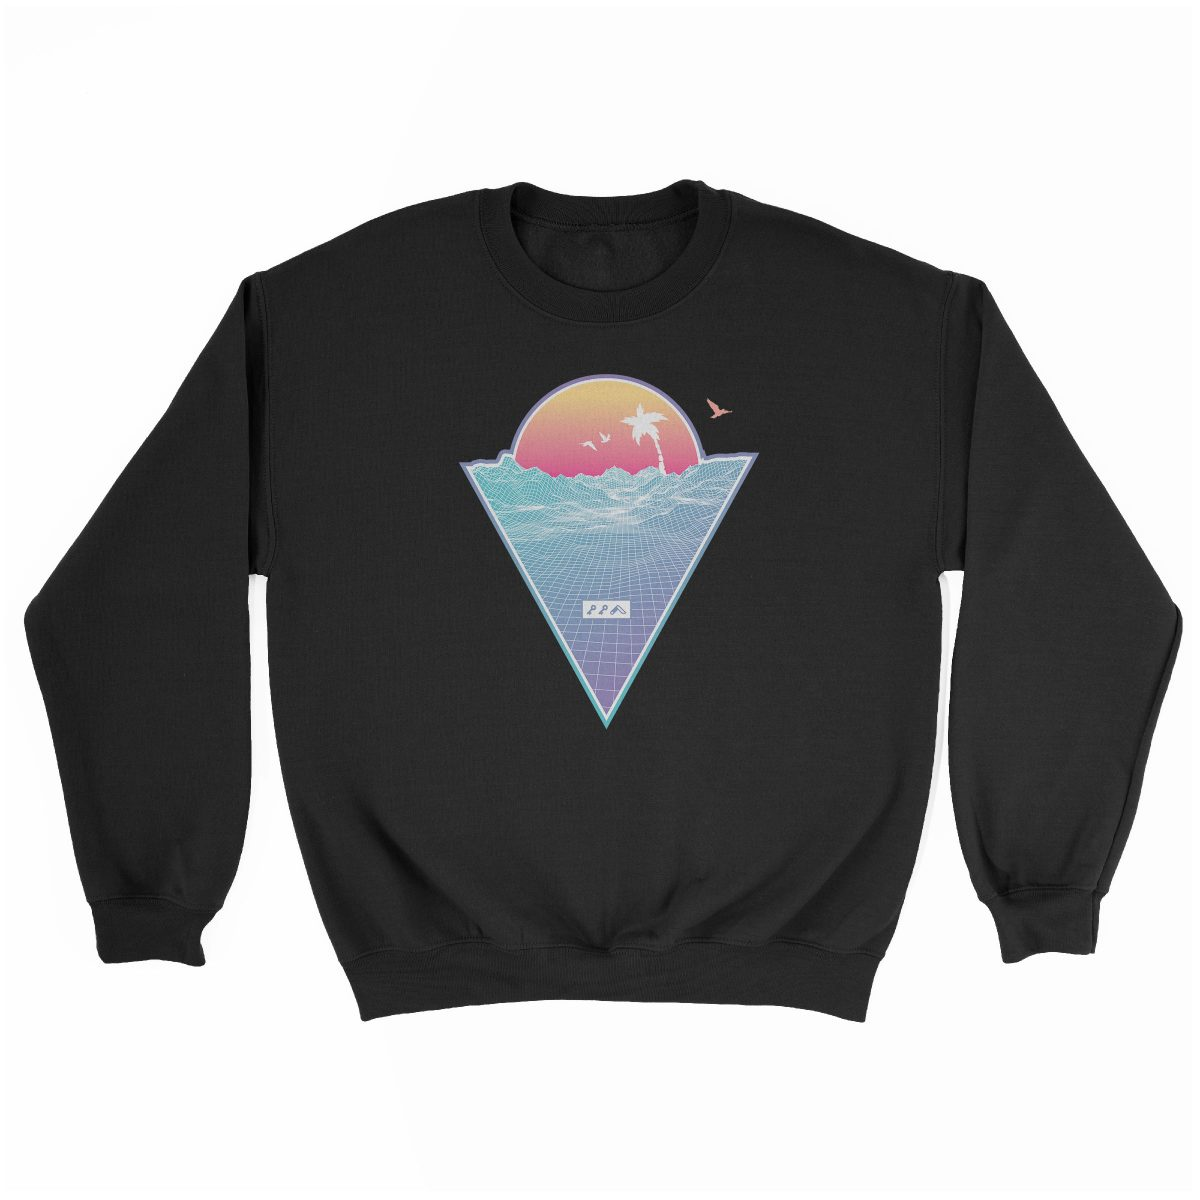 """OFF THE GRID"" cali vibes retro 80s design sweatshirt black at kikicutt.com"